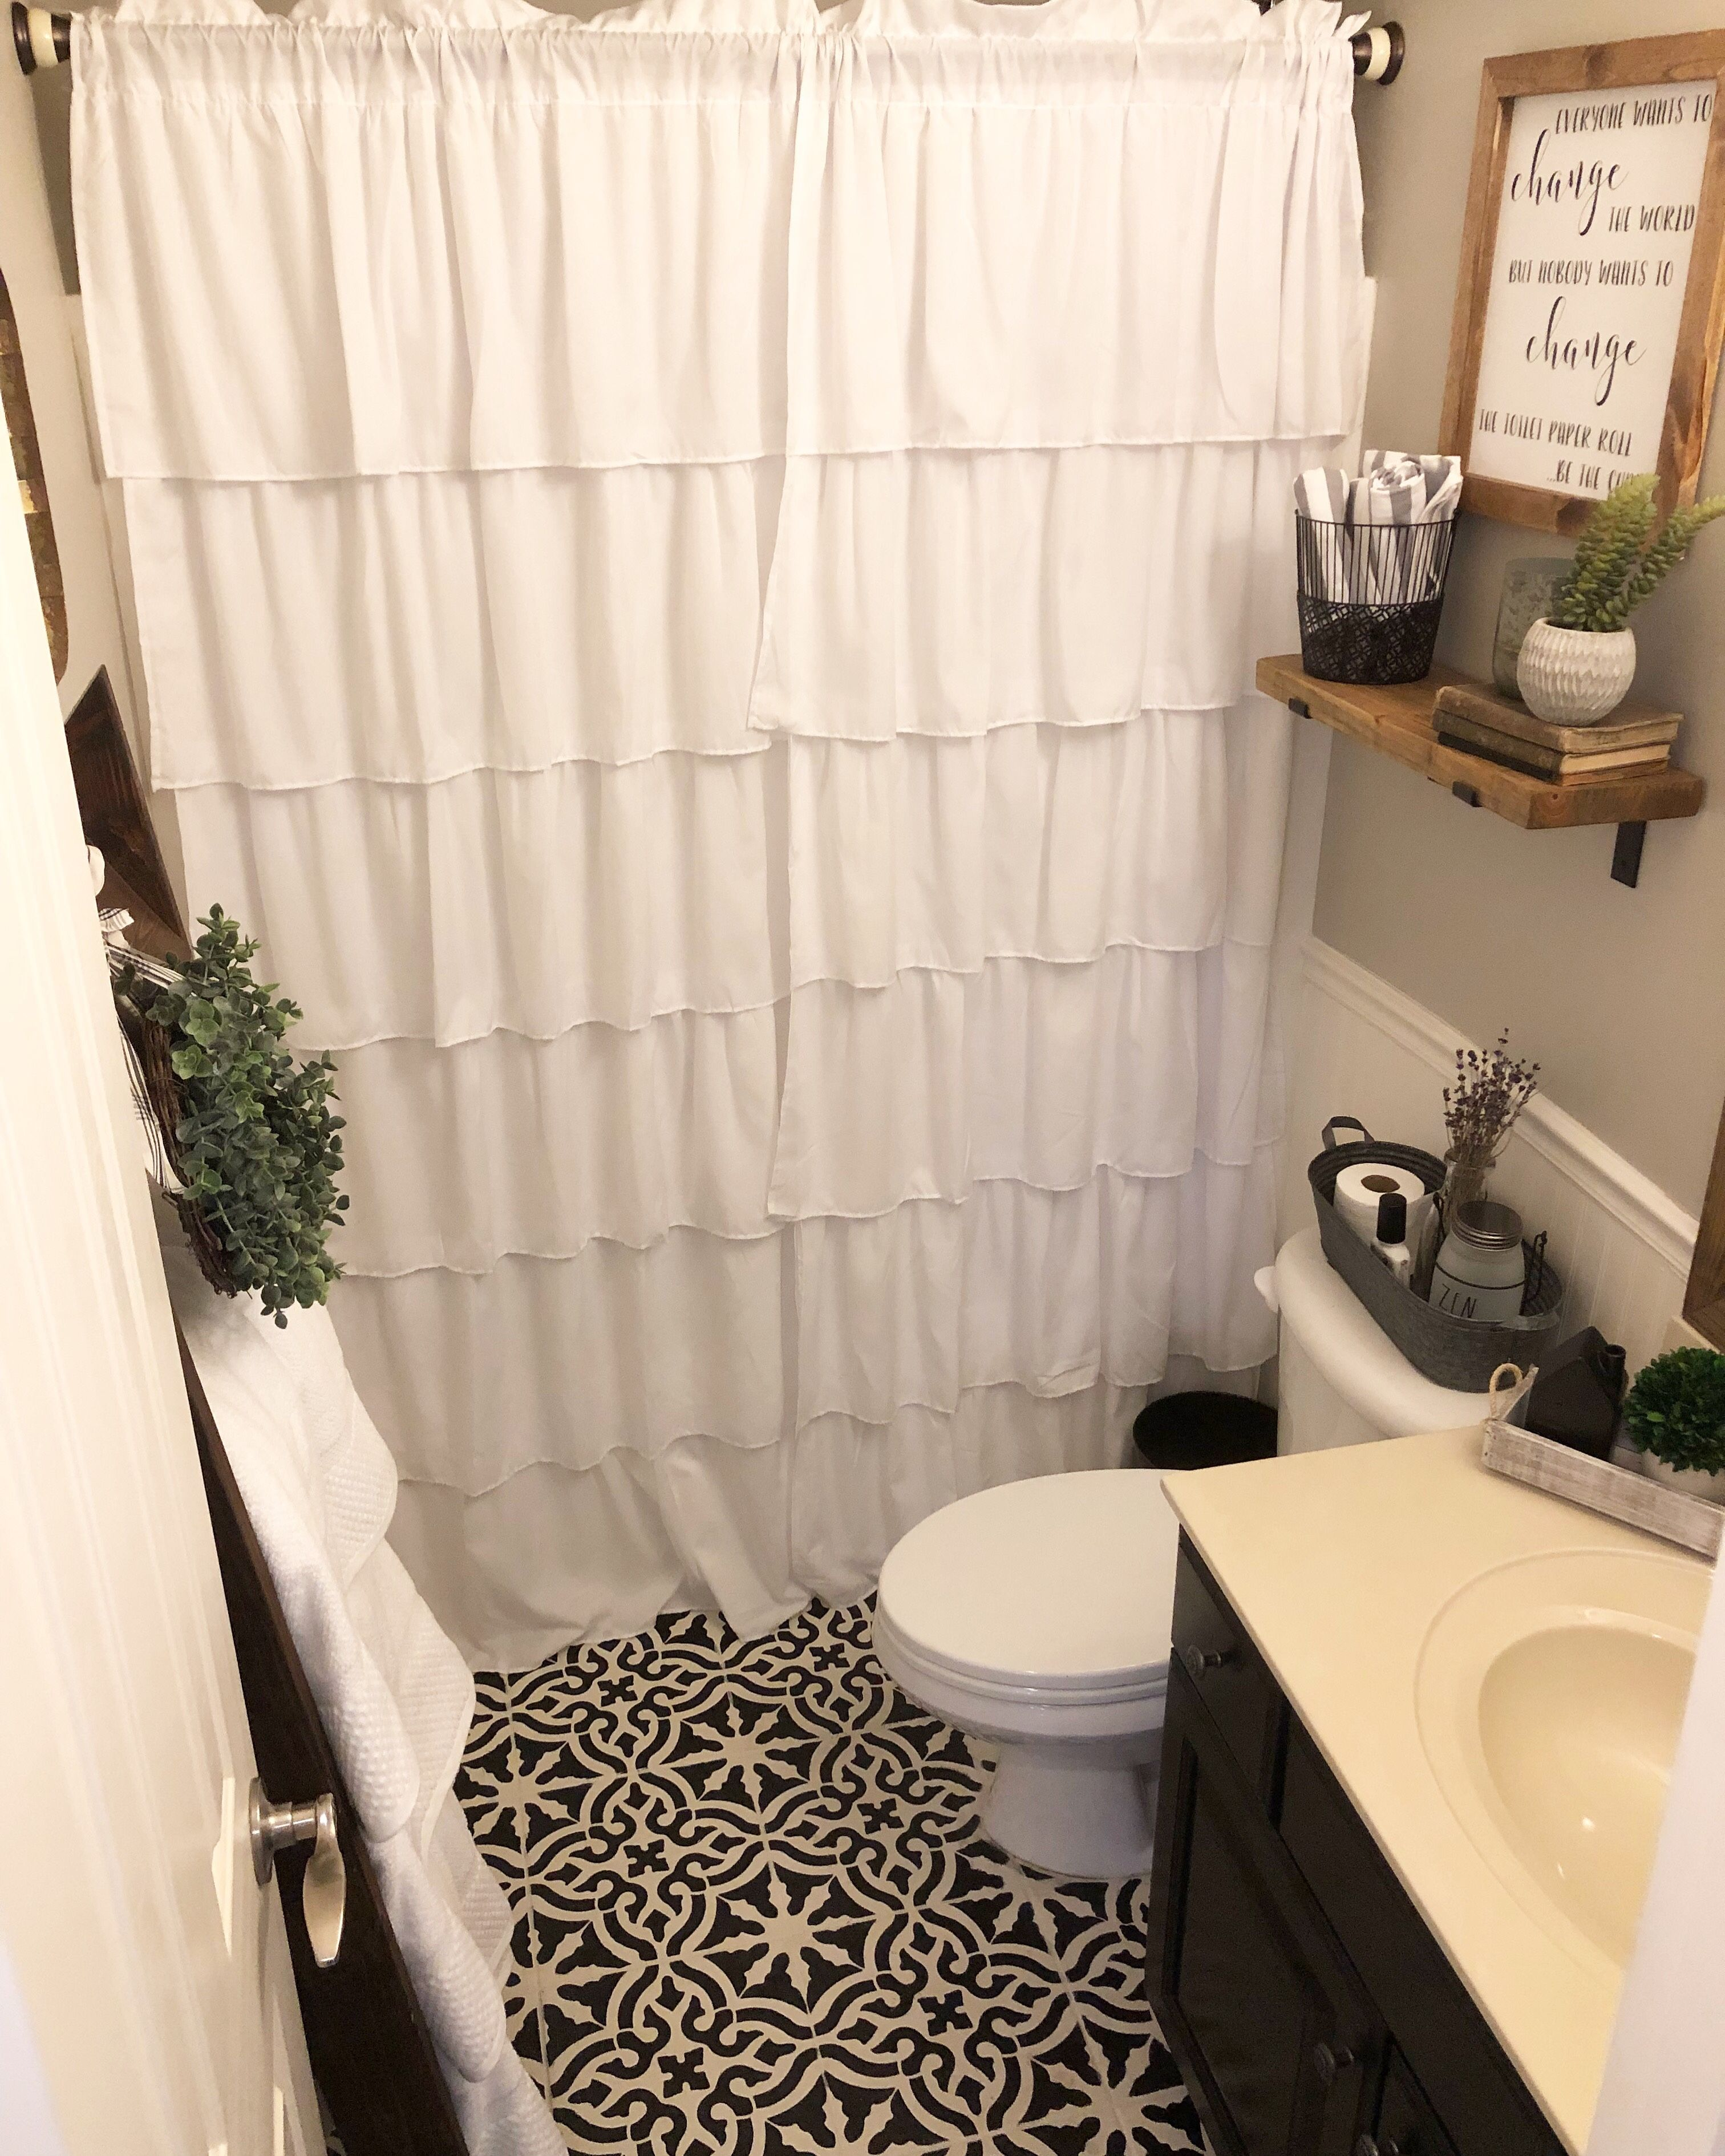 Budget Bathroom Makeover Reveal! The $100 Room Challenge is complete ...